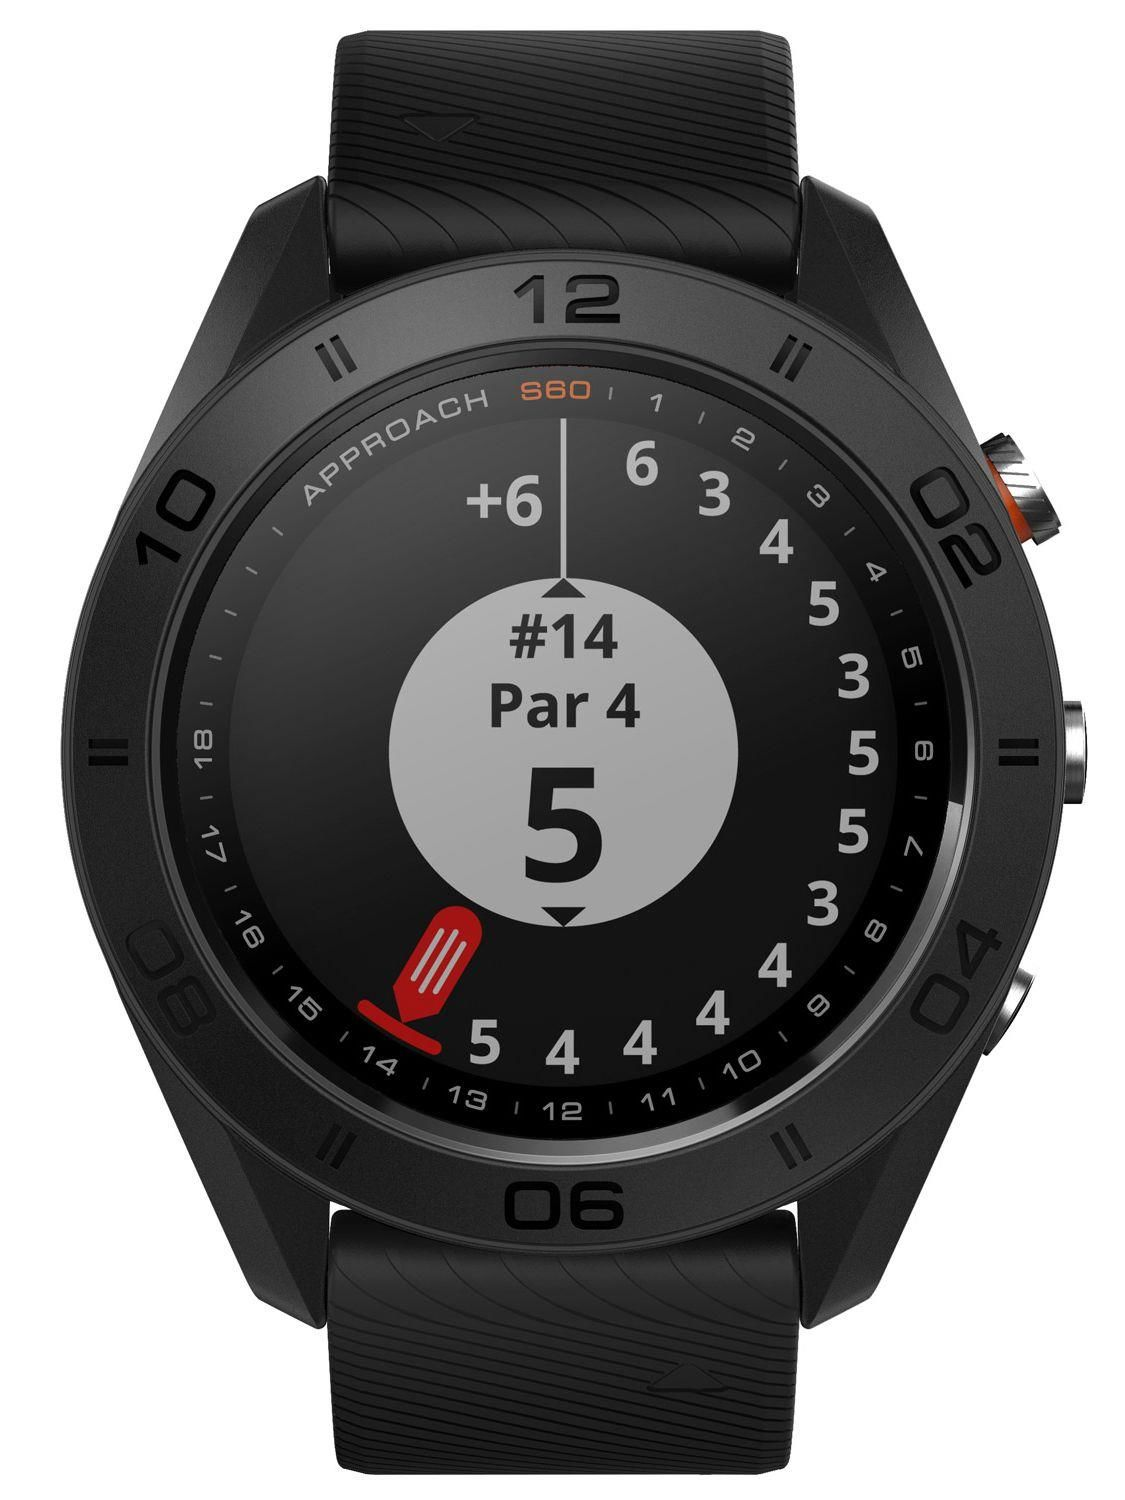 купить Смарт часы Garmin Approach S60 - Black GPS golf watch with black  silicone band в 409c32176e70a